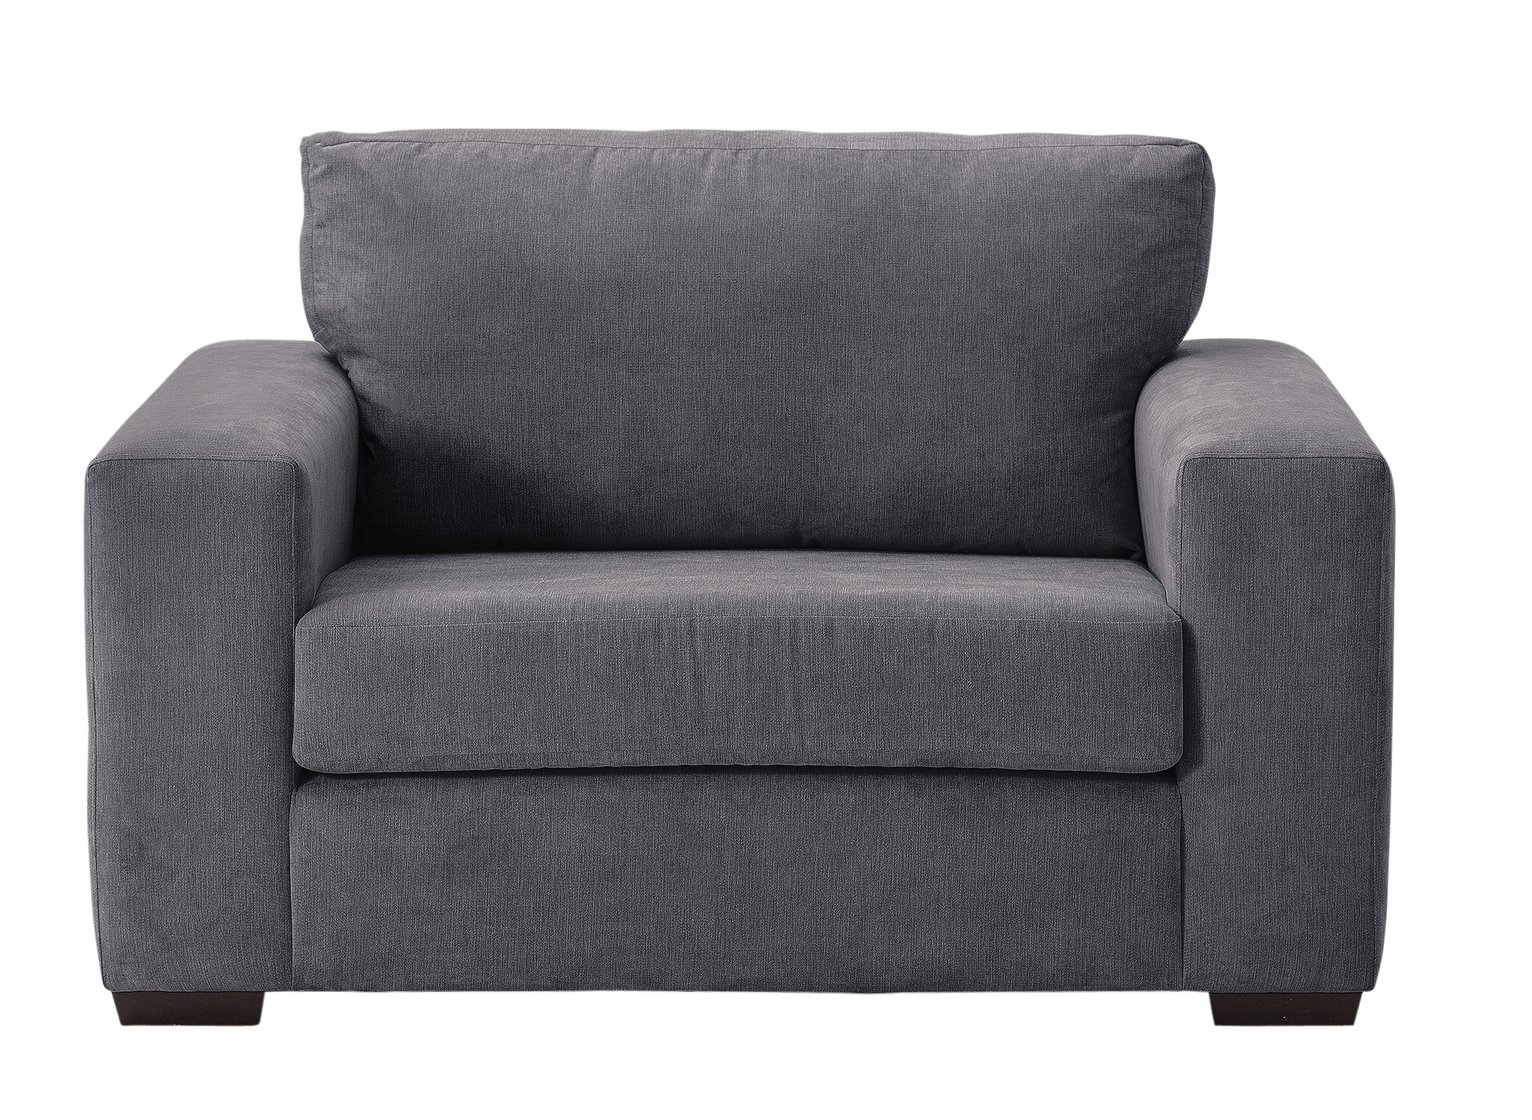 Argos Home Eton Fabric Cuddle Chair - Charcoal